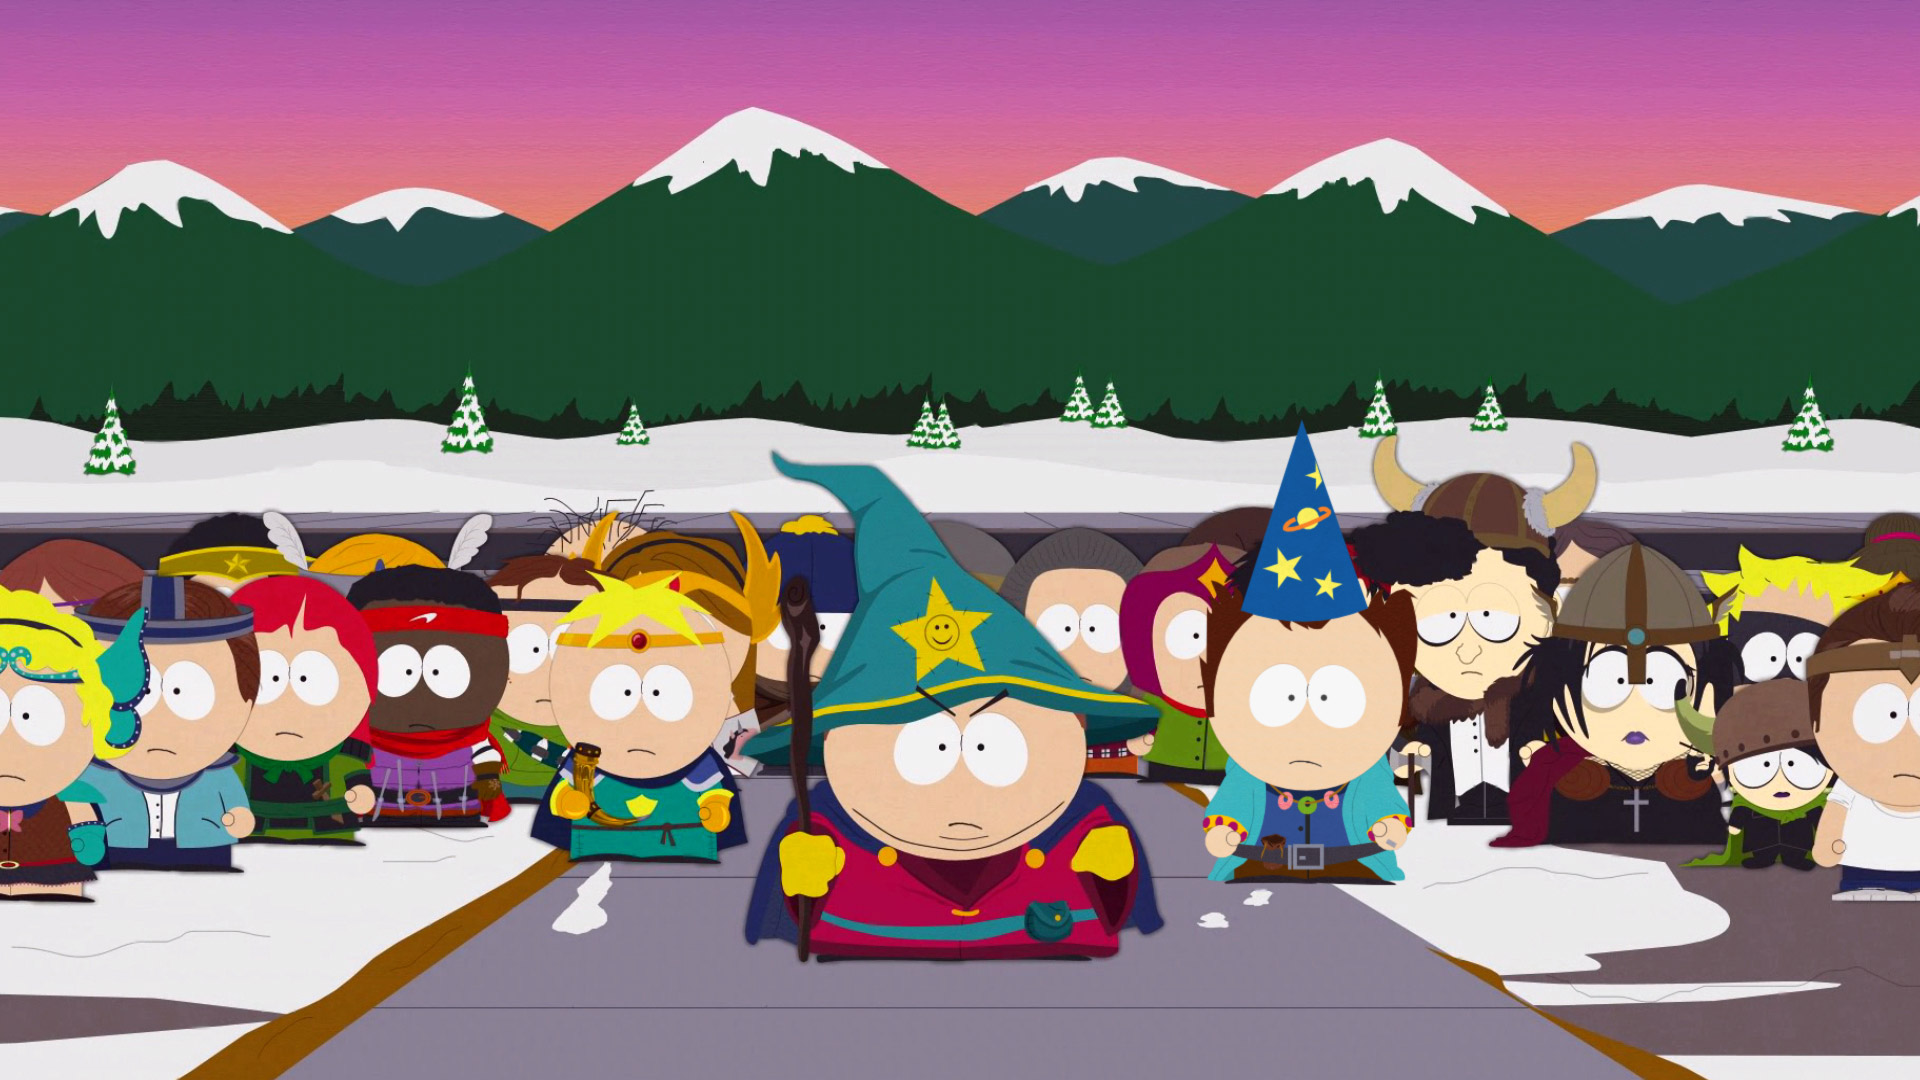 South Park The Stick of Truth wallpaper 1